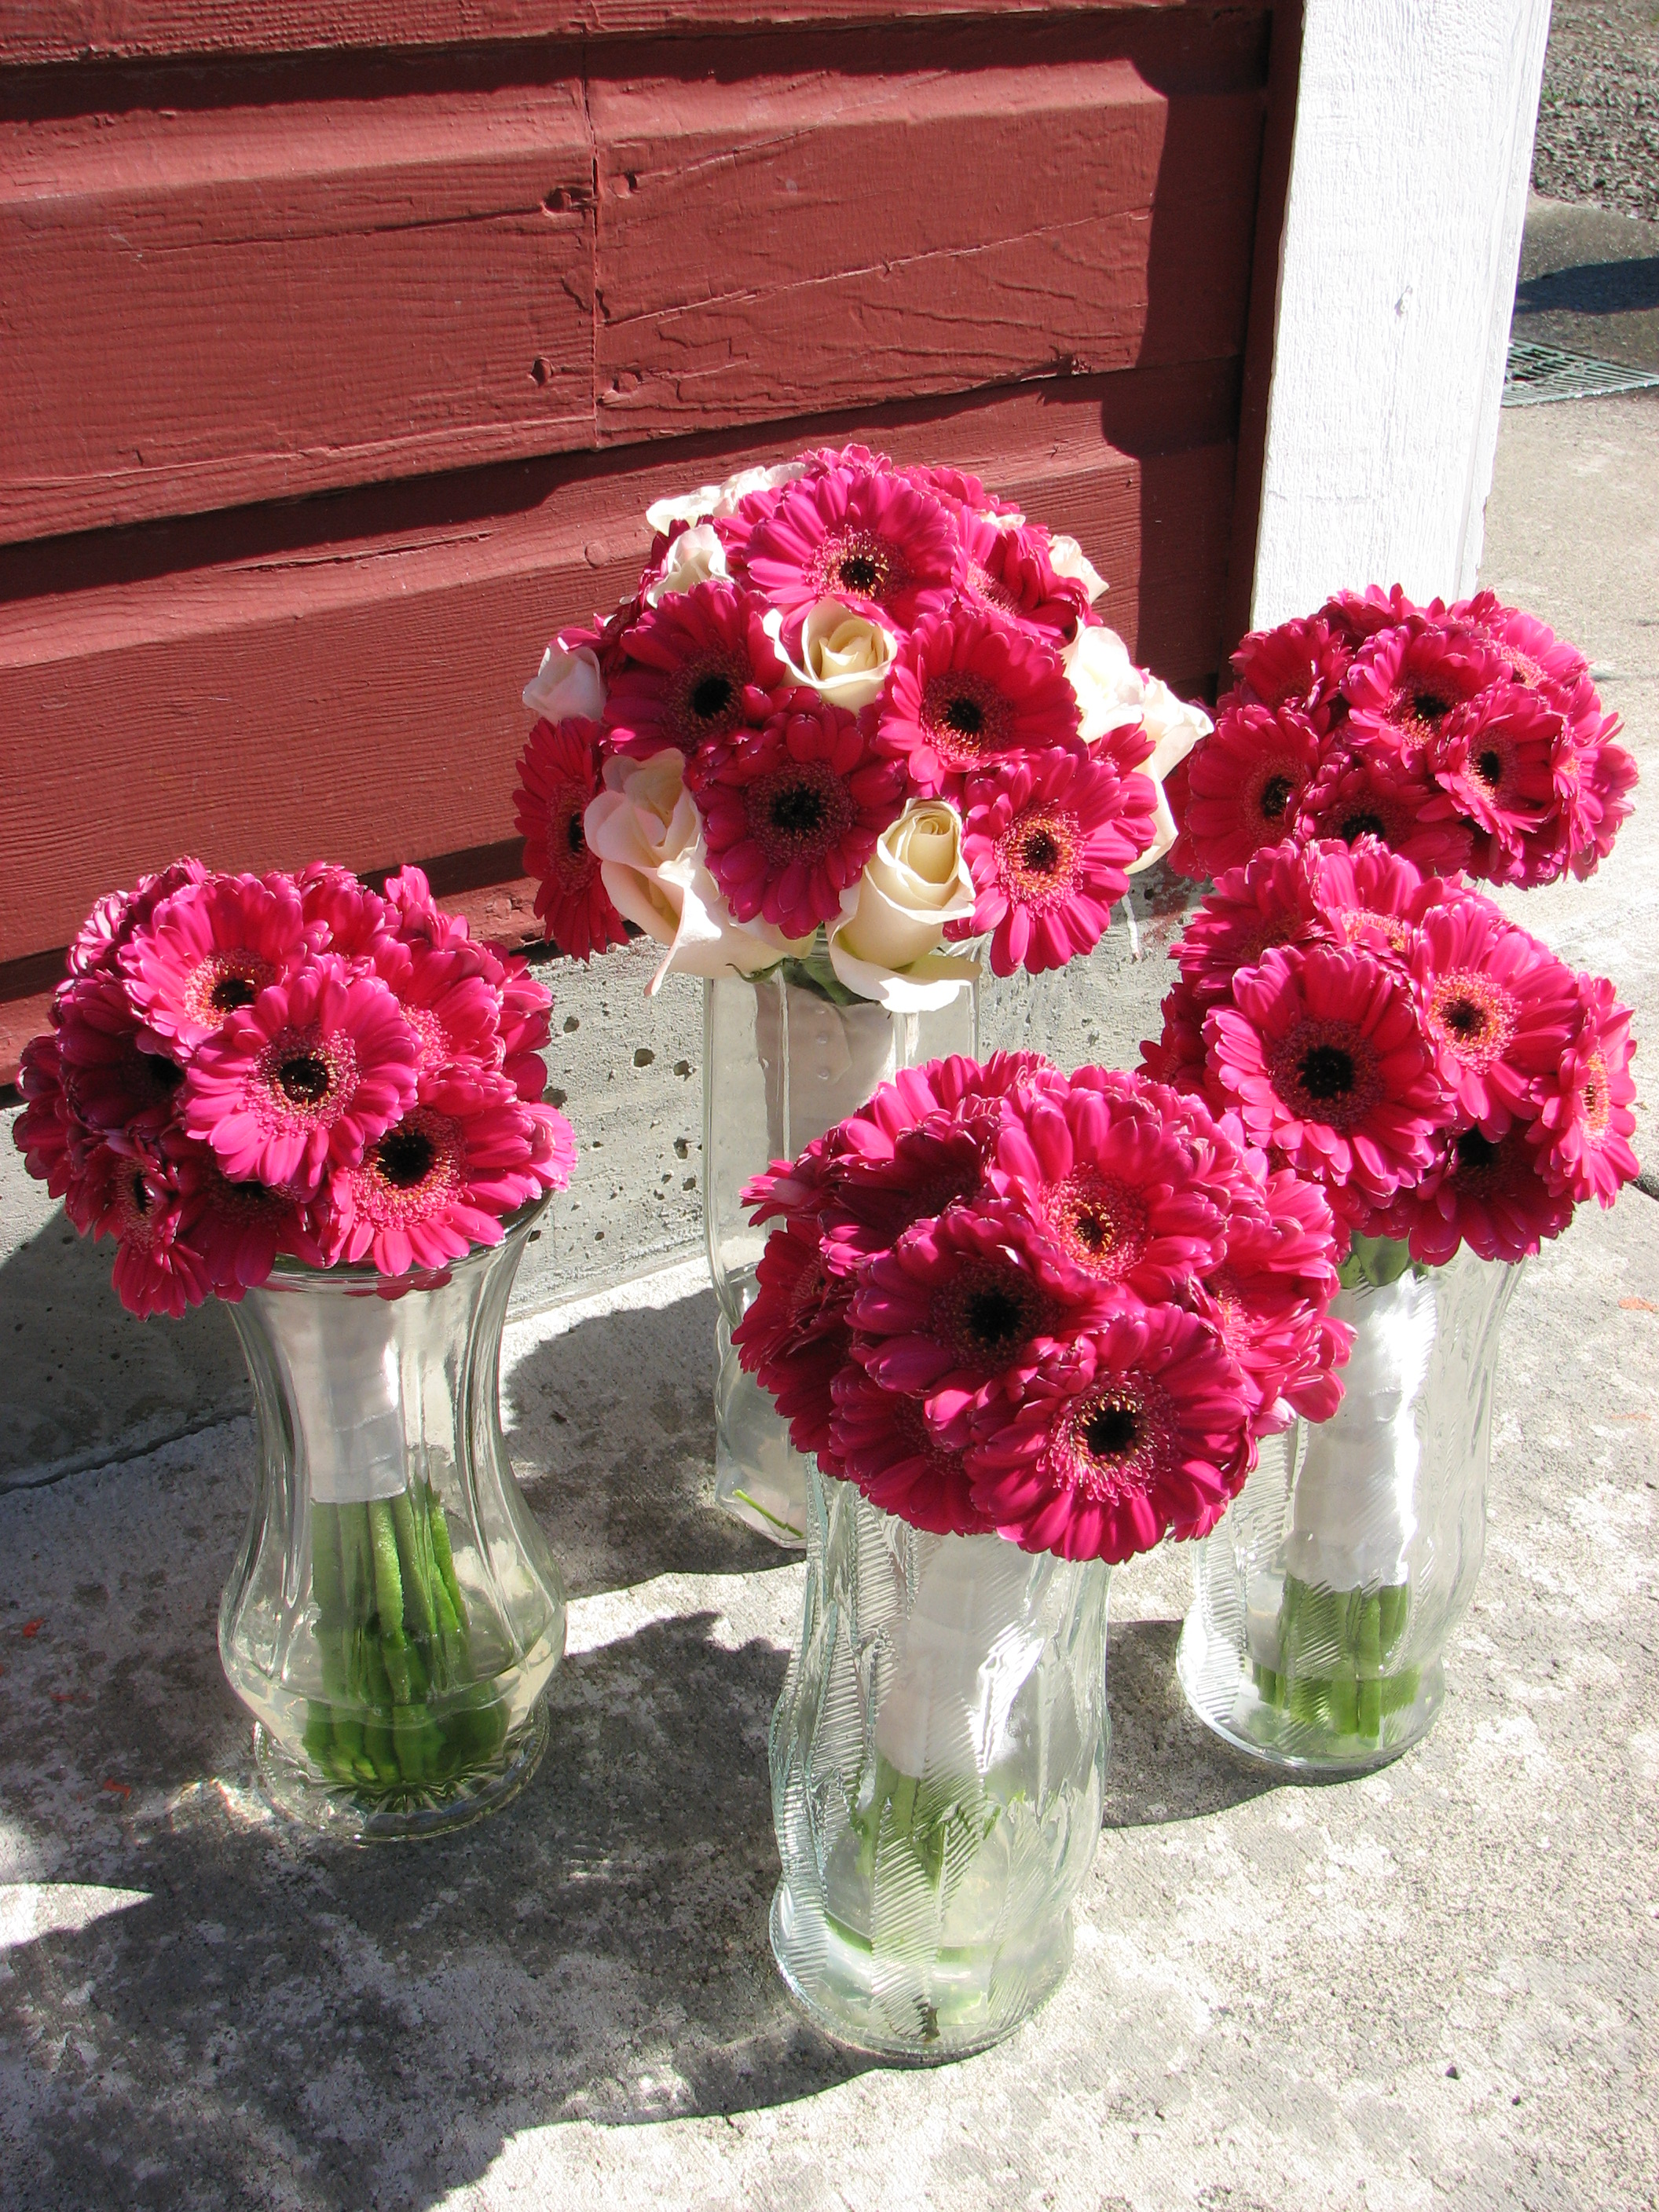 File:Magenta wedding bouquets.JPG - Wikimedia Commons